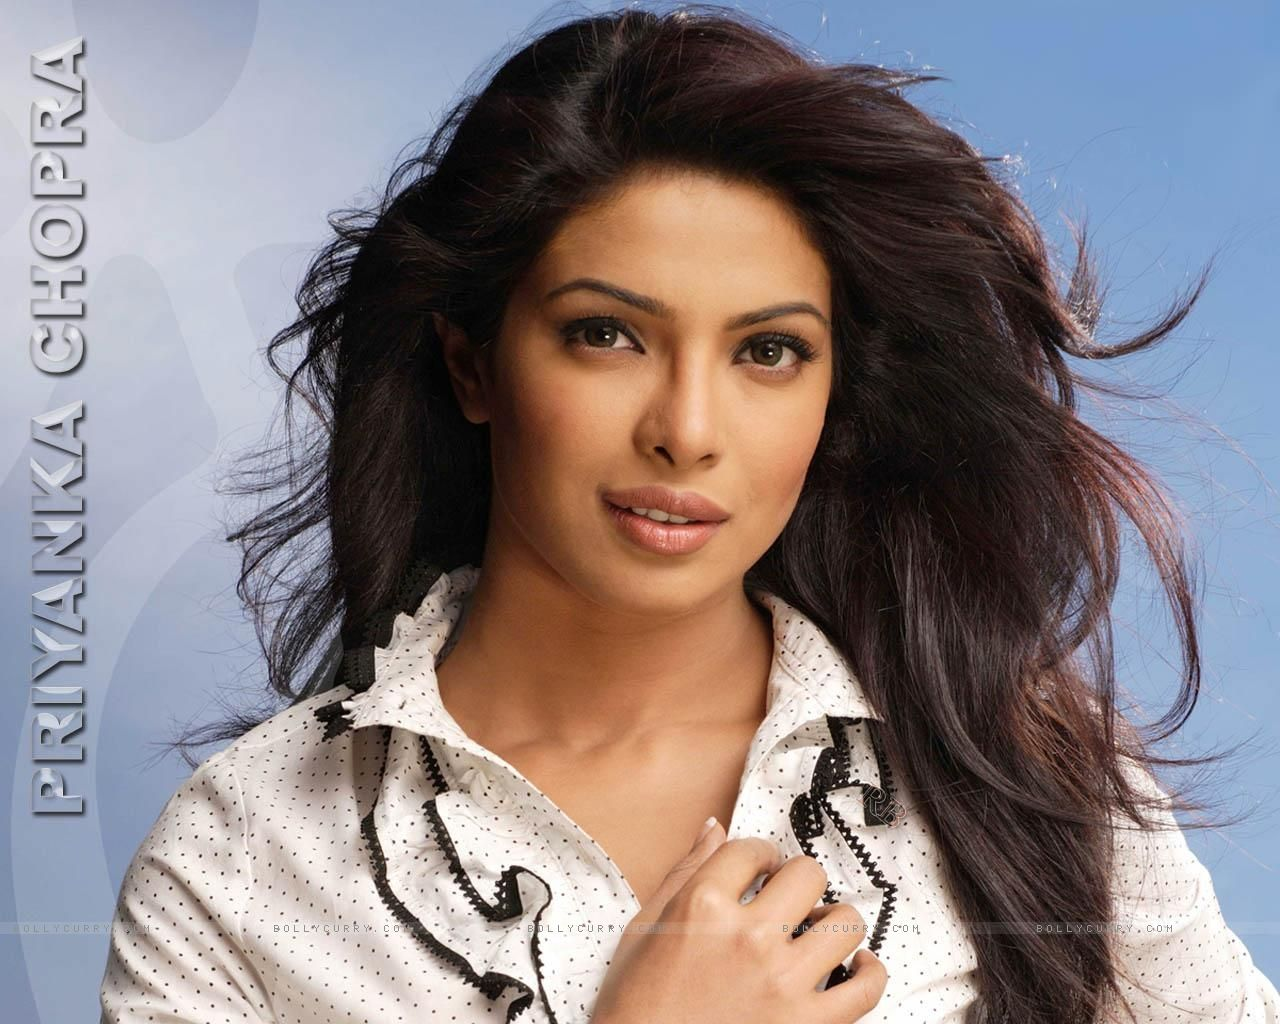 Priyanka Chopra Wallpapers Free Download